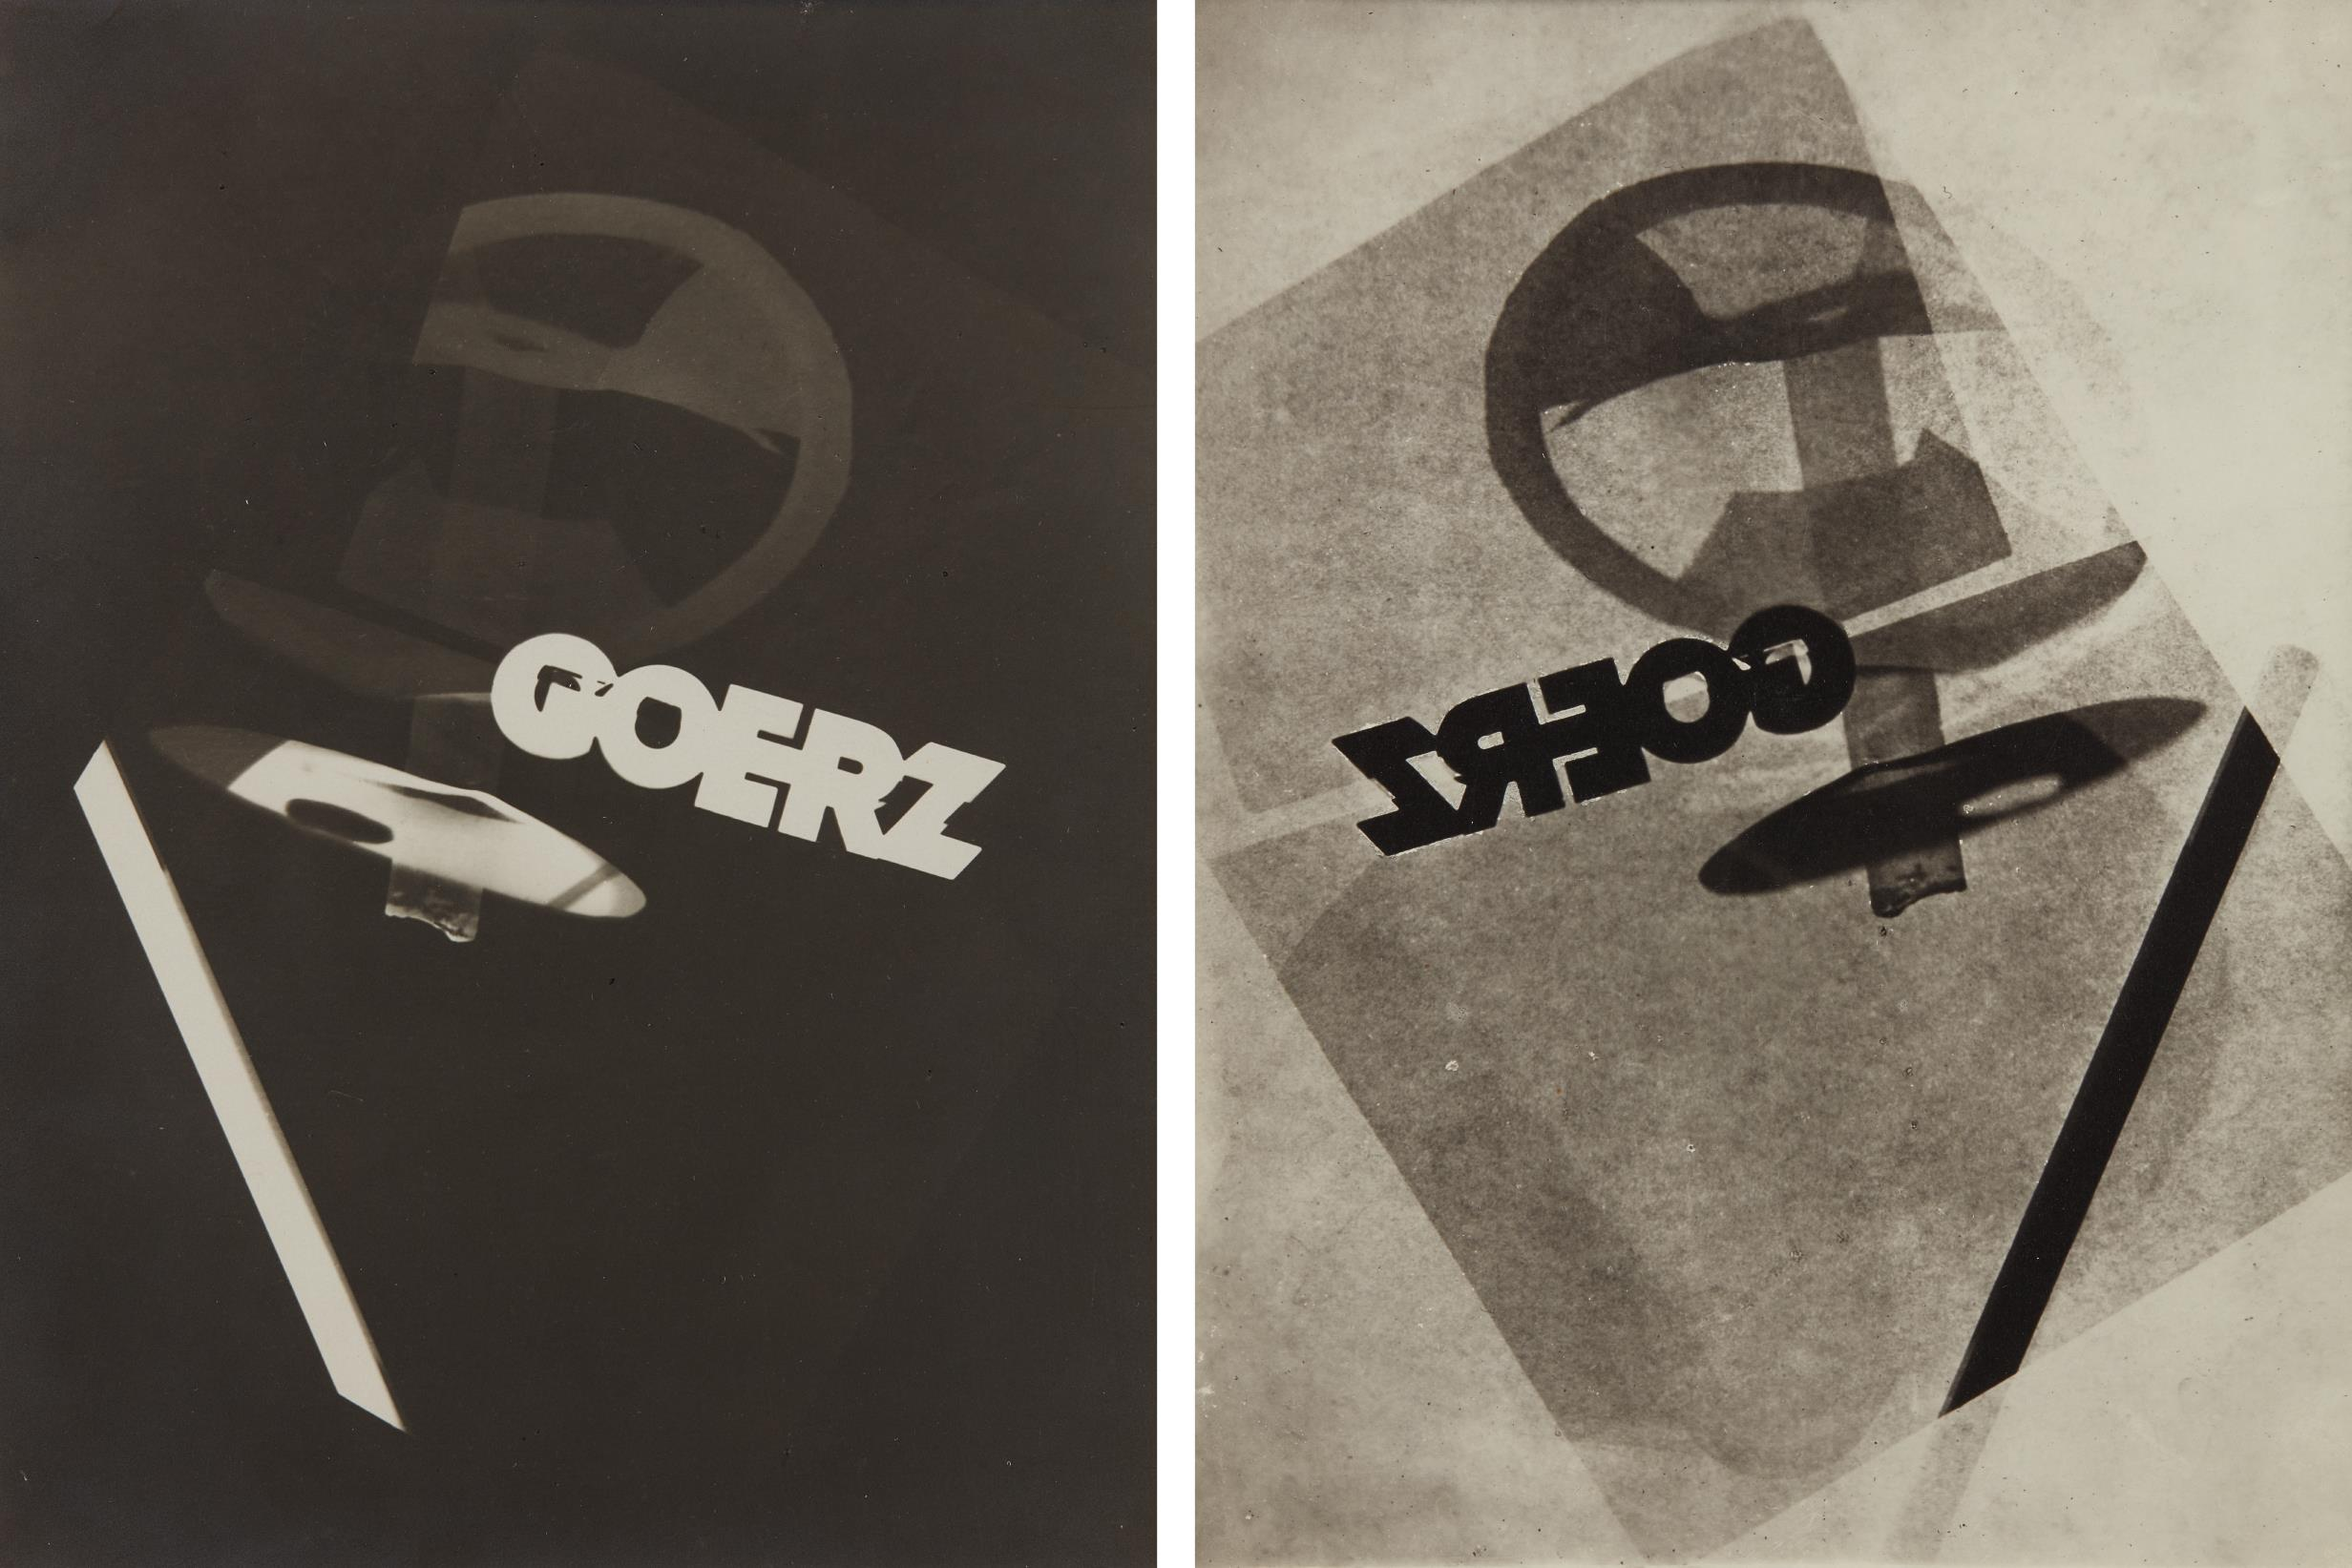 Laszlo Moholy-Nagy-Photogram studies for Goerz (negative and positive)-1925